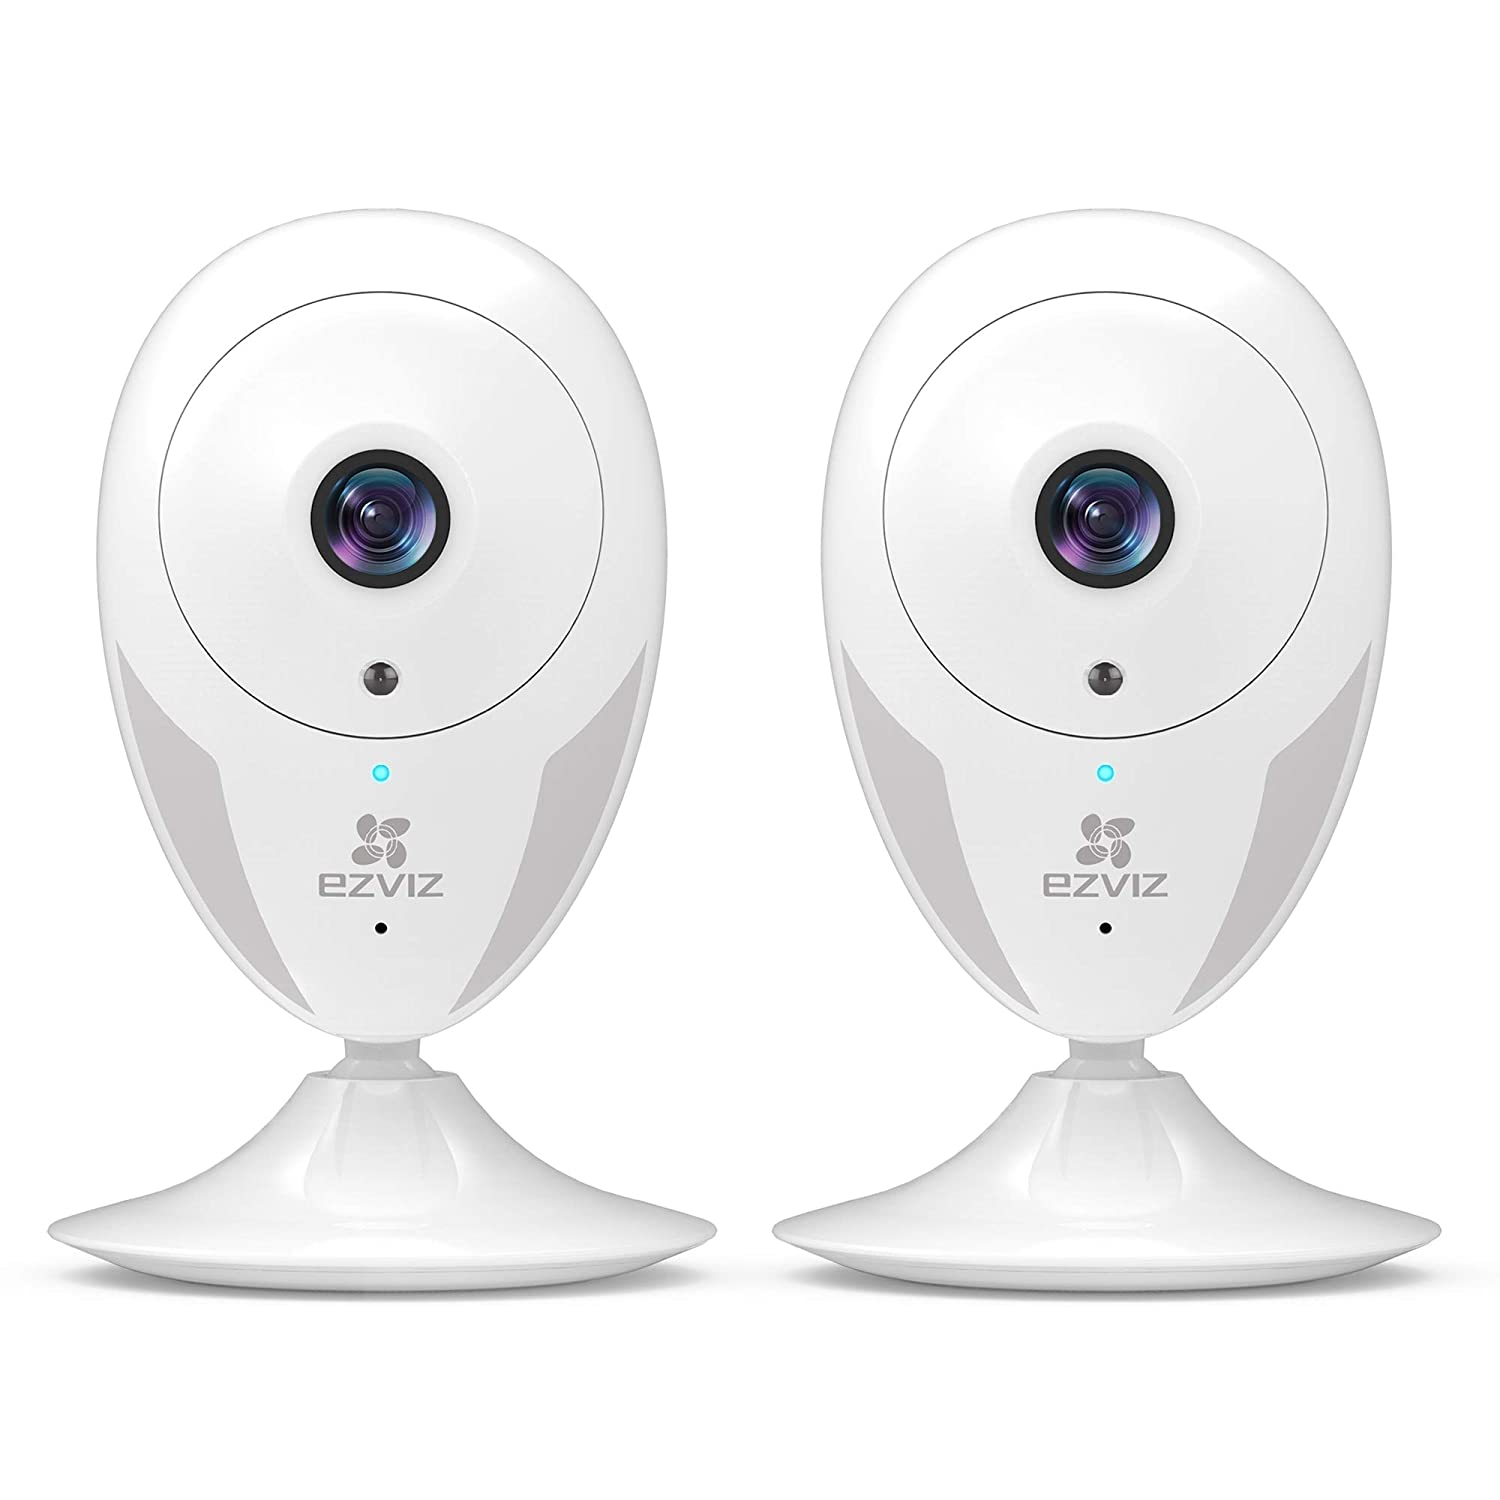 EZVIZ Indoor Wi-Fi Security Camera HD IPC Works with Alexa Google Home IFTTT 2.4G WiFi 25ft Night Vision Motion Detection Alert Baby Pet Monitoring 111 Wide Angle Two-Way Audio White CTQ2C 2 Pack